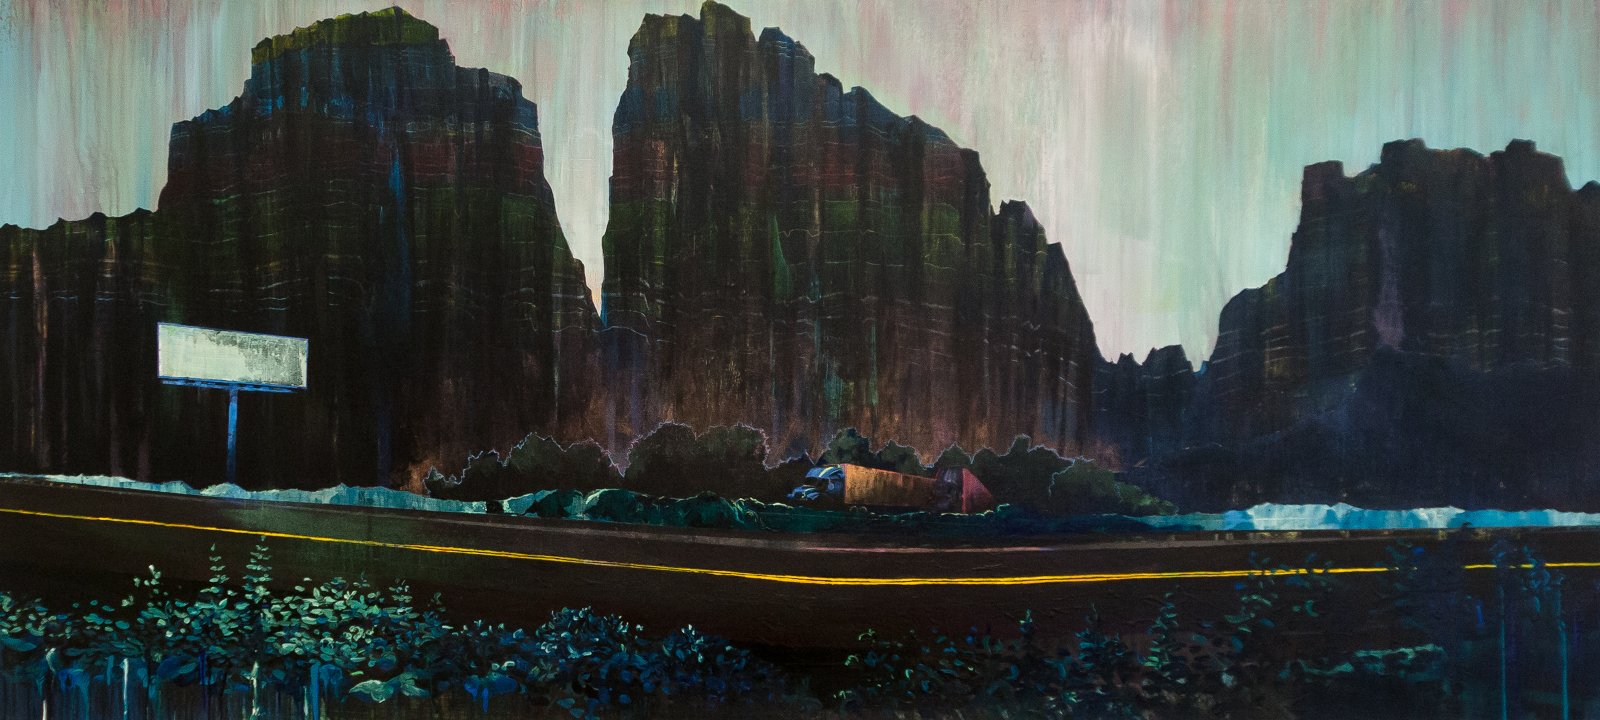 Arizona , 2009, acrylic on canvas, 54 x 120 in., available at  Haw Contemporary